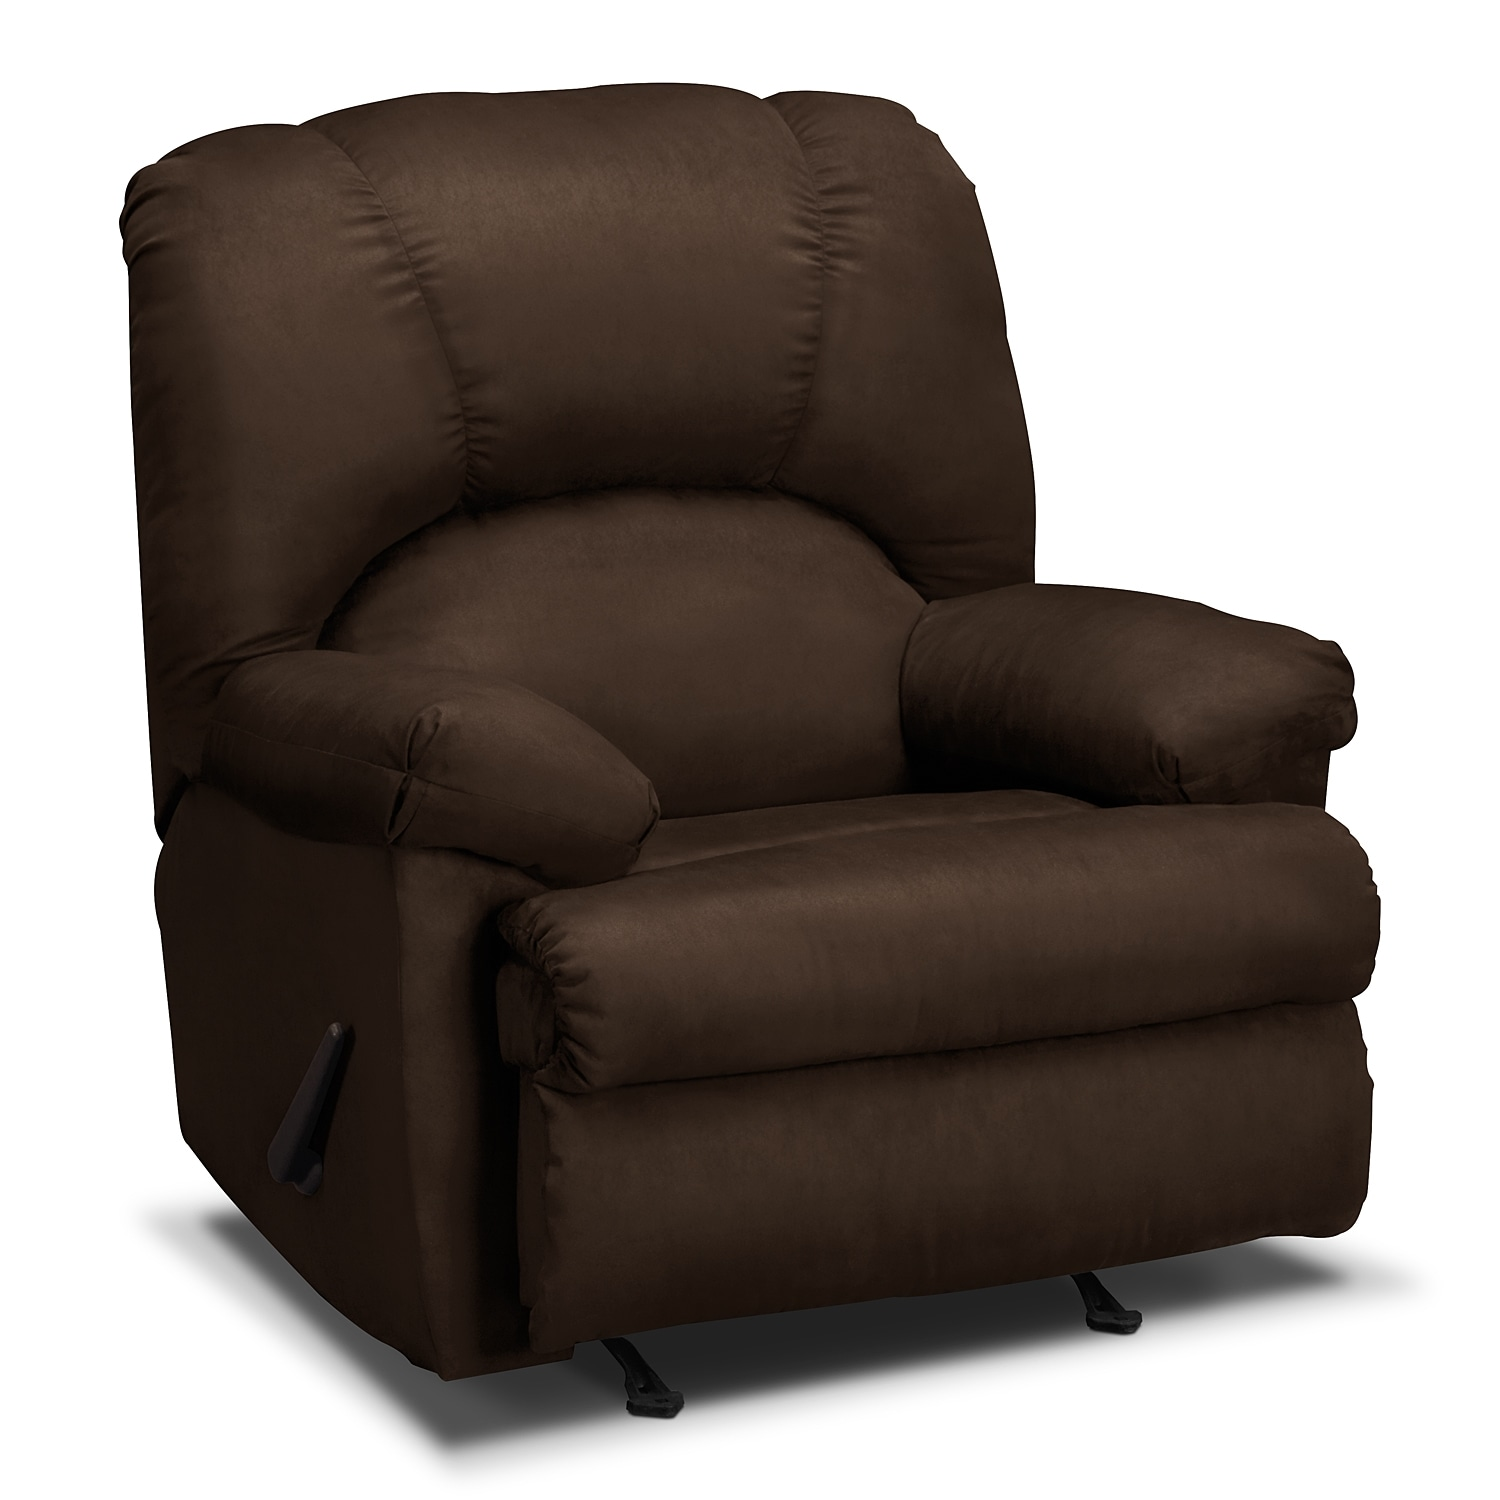 Living Room Furniture - Quincy Rocker Recliner - Chocolate